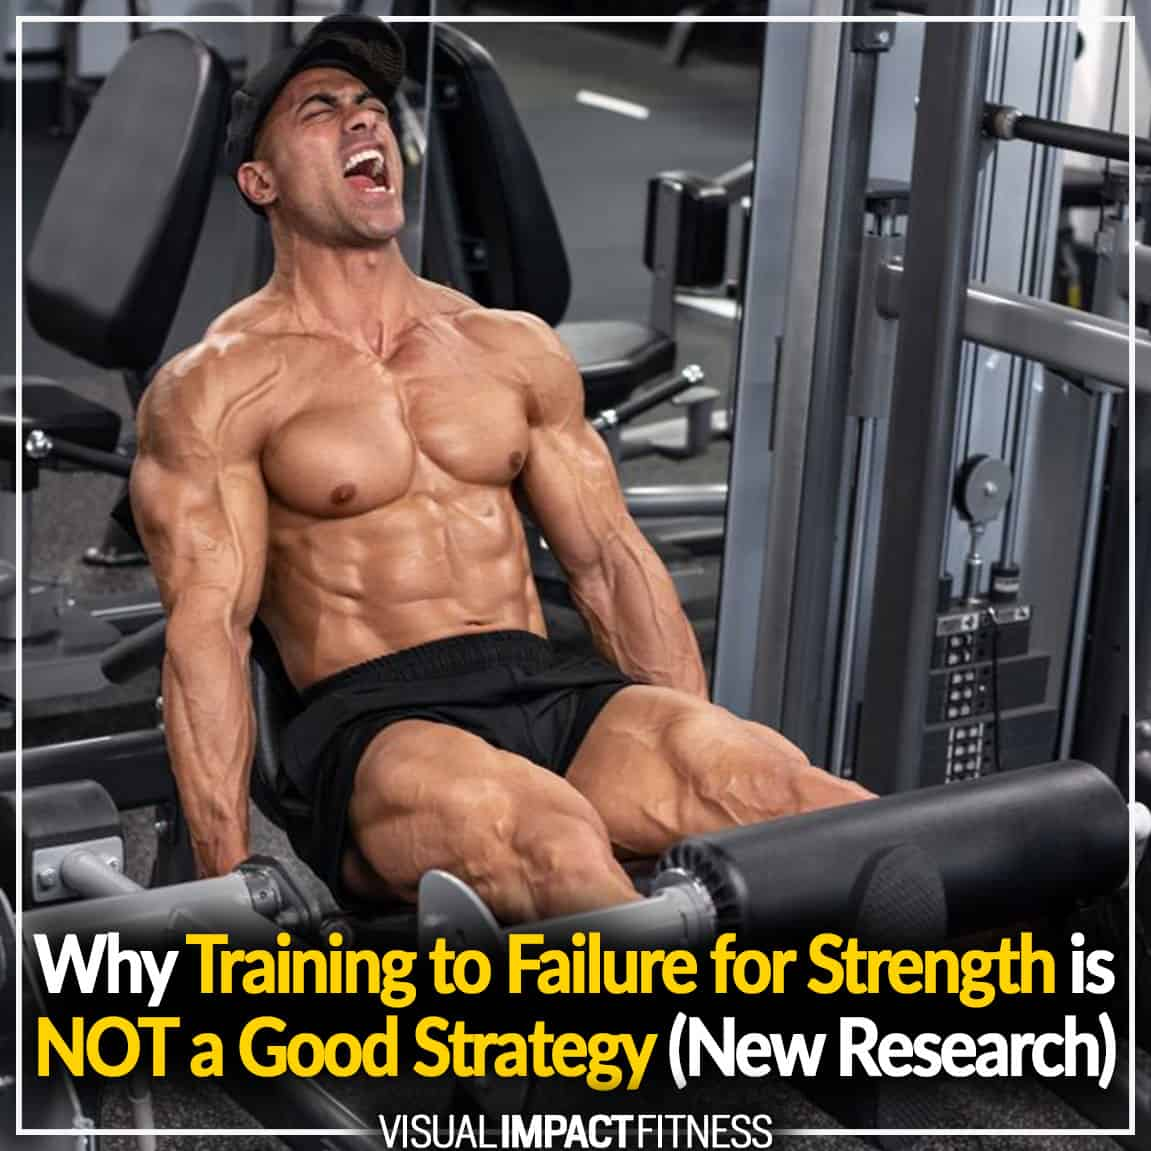 Training to Failure for Strength is NOT a Good Strategy (New Research)